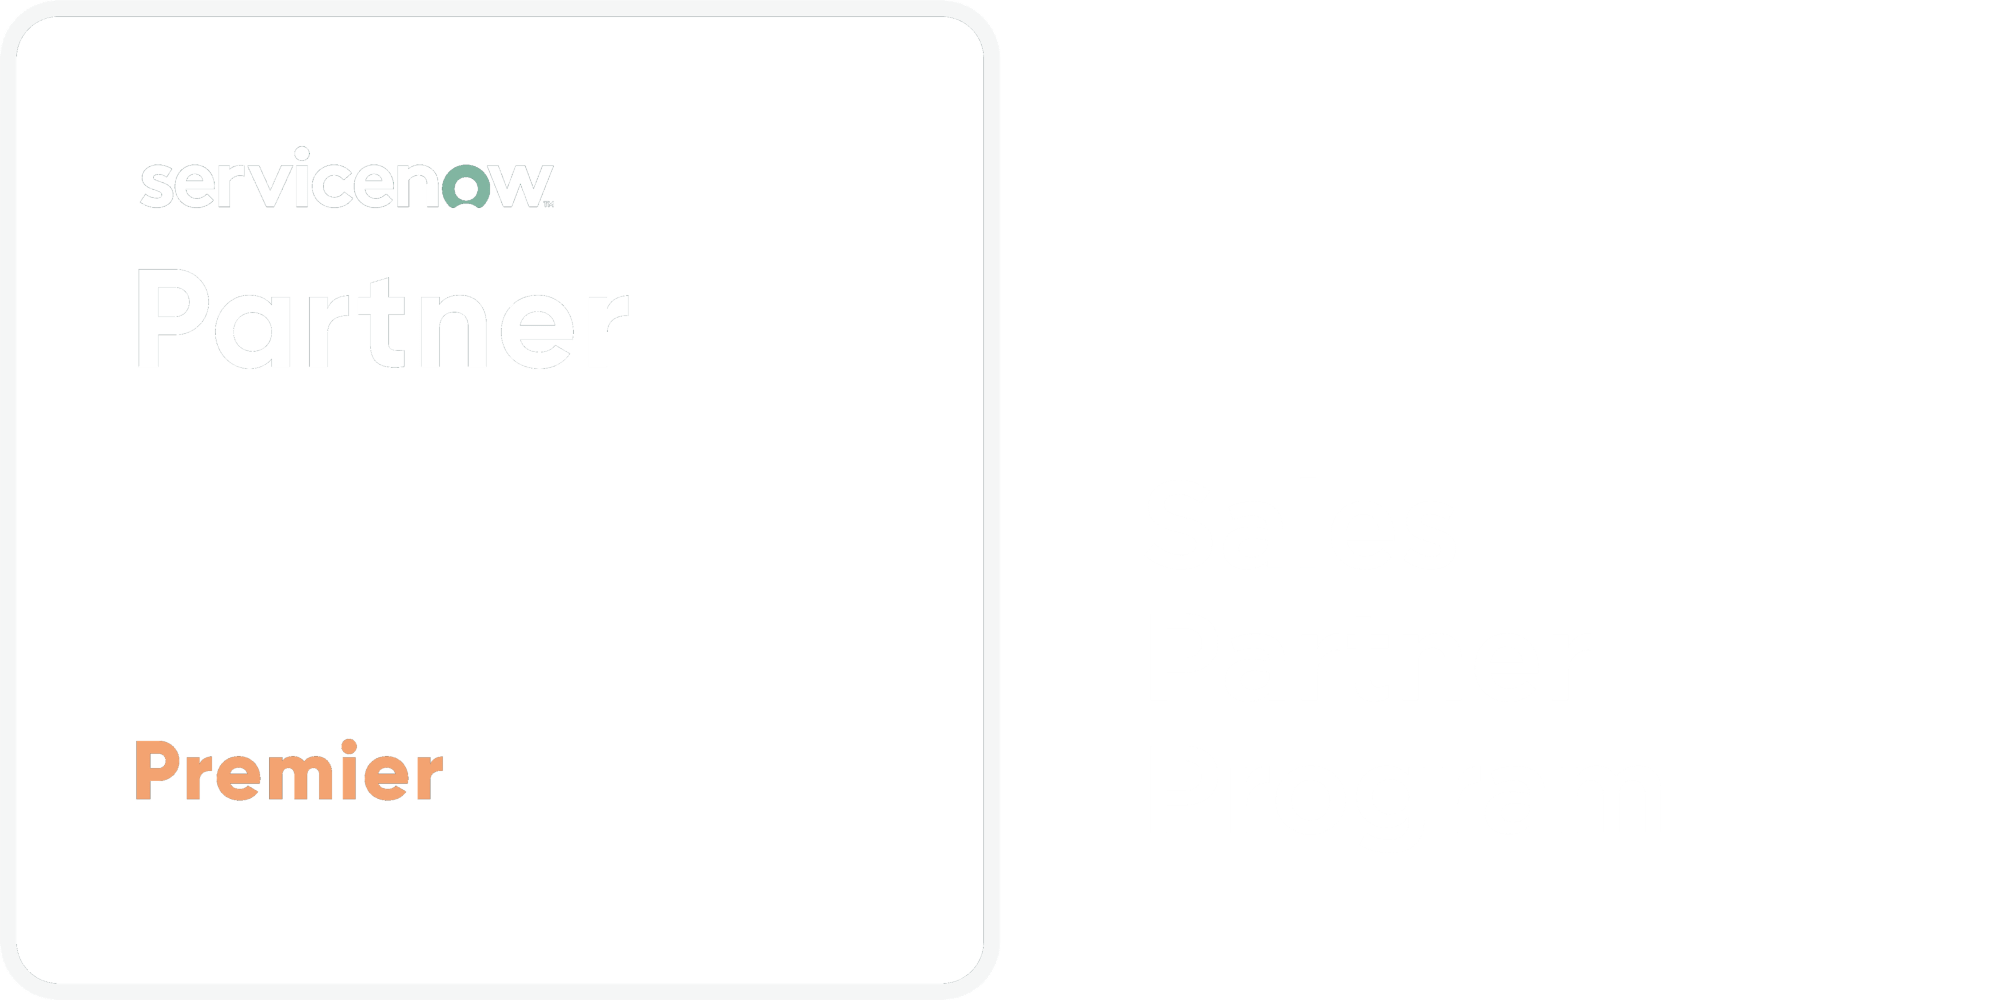 syscovery Solve & Serve ist ServiceNow Premier Sales Partner